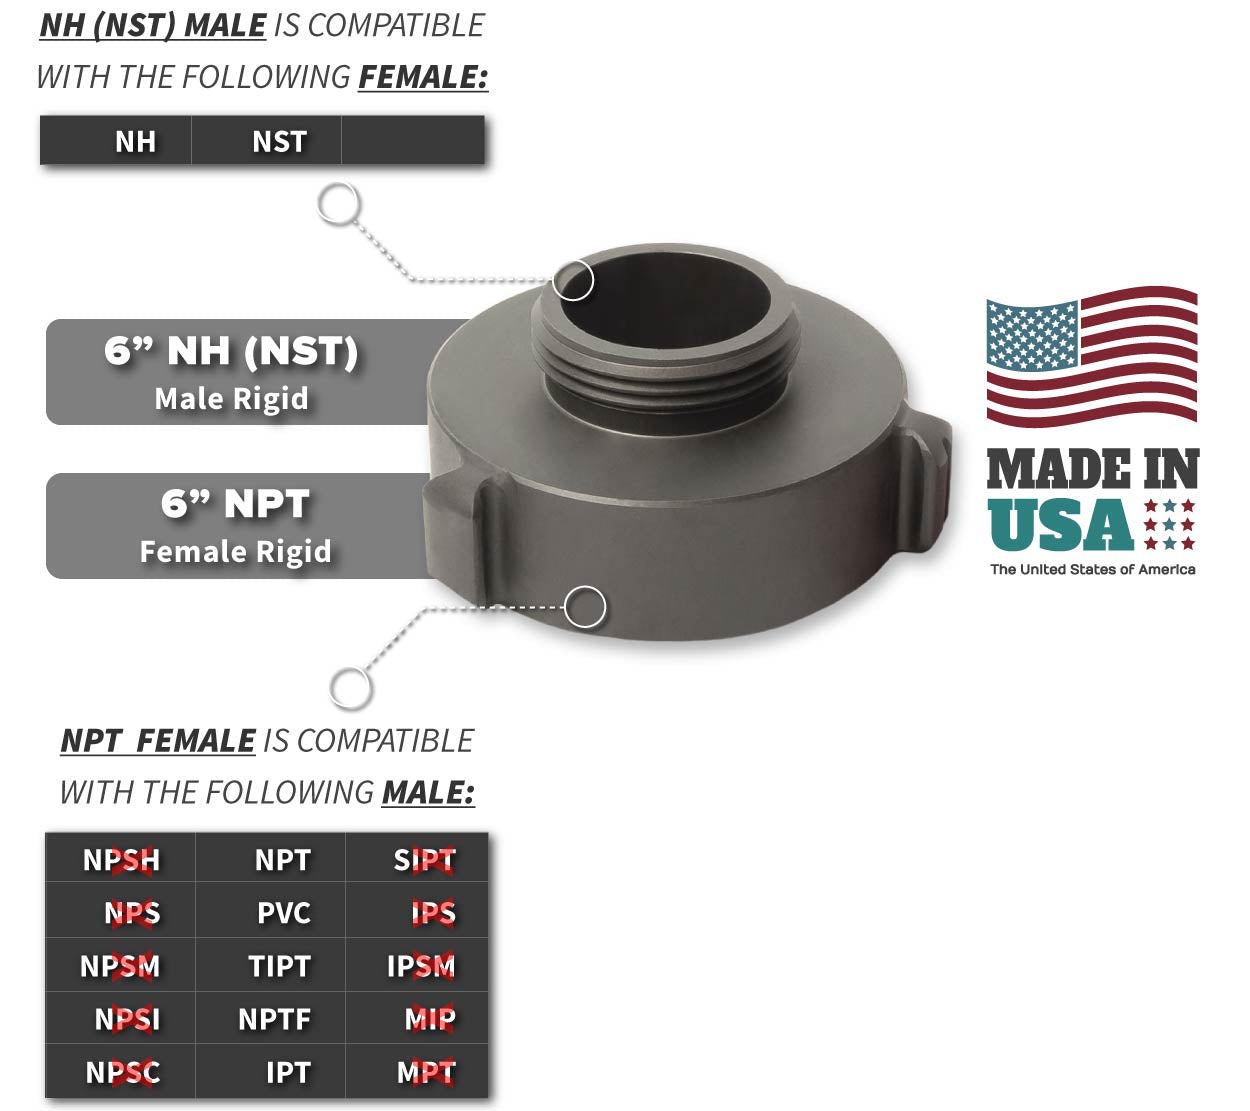 6 Inch NPT Female x 6 Inch NH-NST Male Compatibility Thread Chart